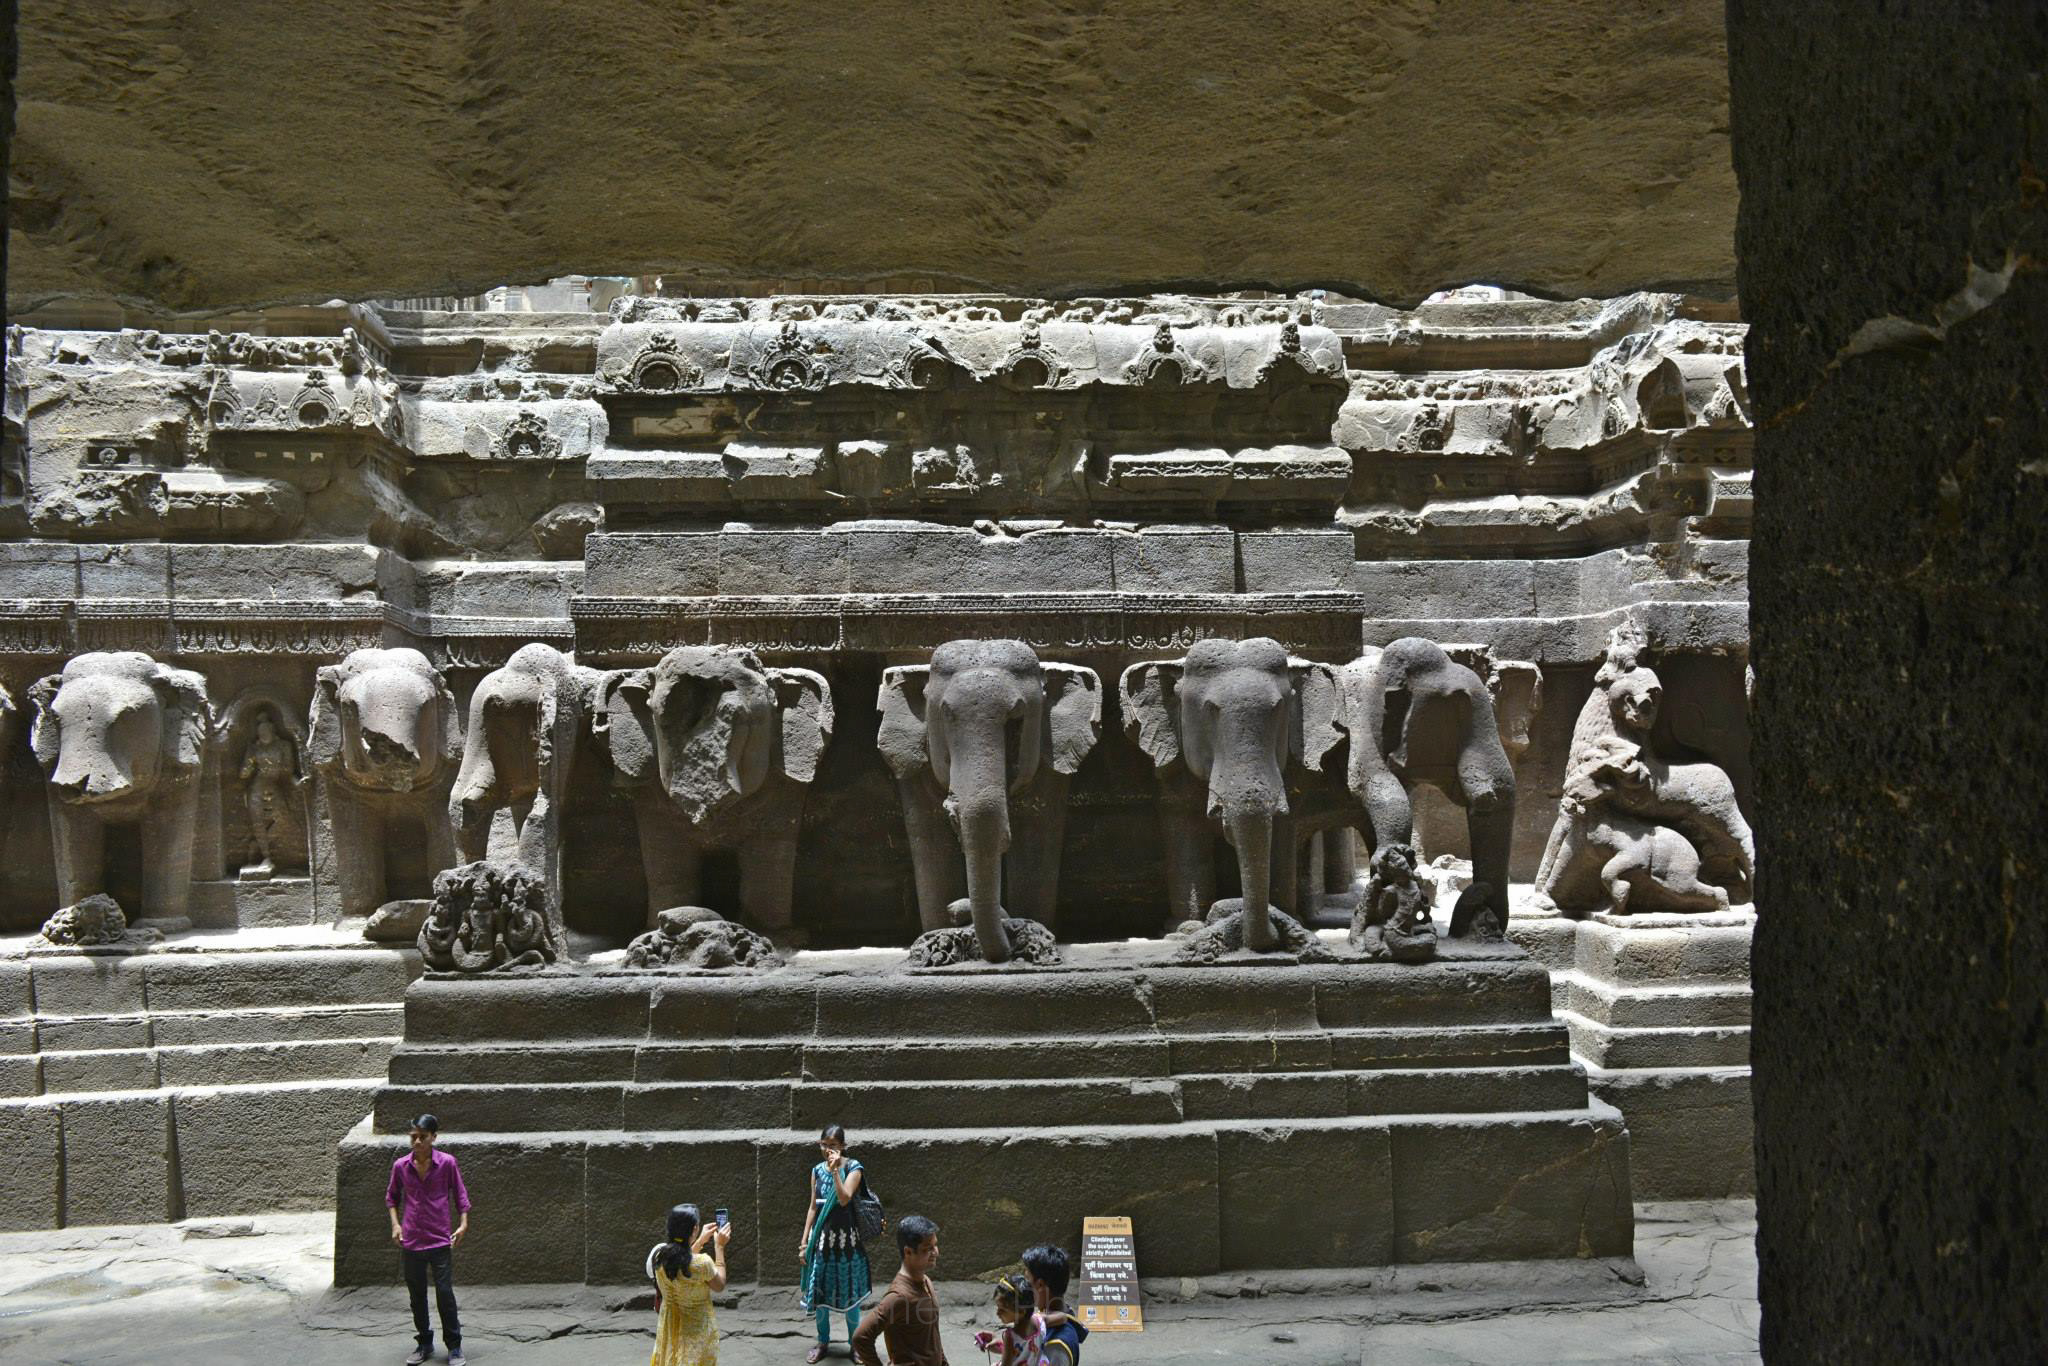 Life Size Sculpture of Elephants In Kailash Temple